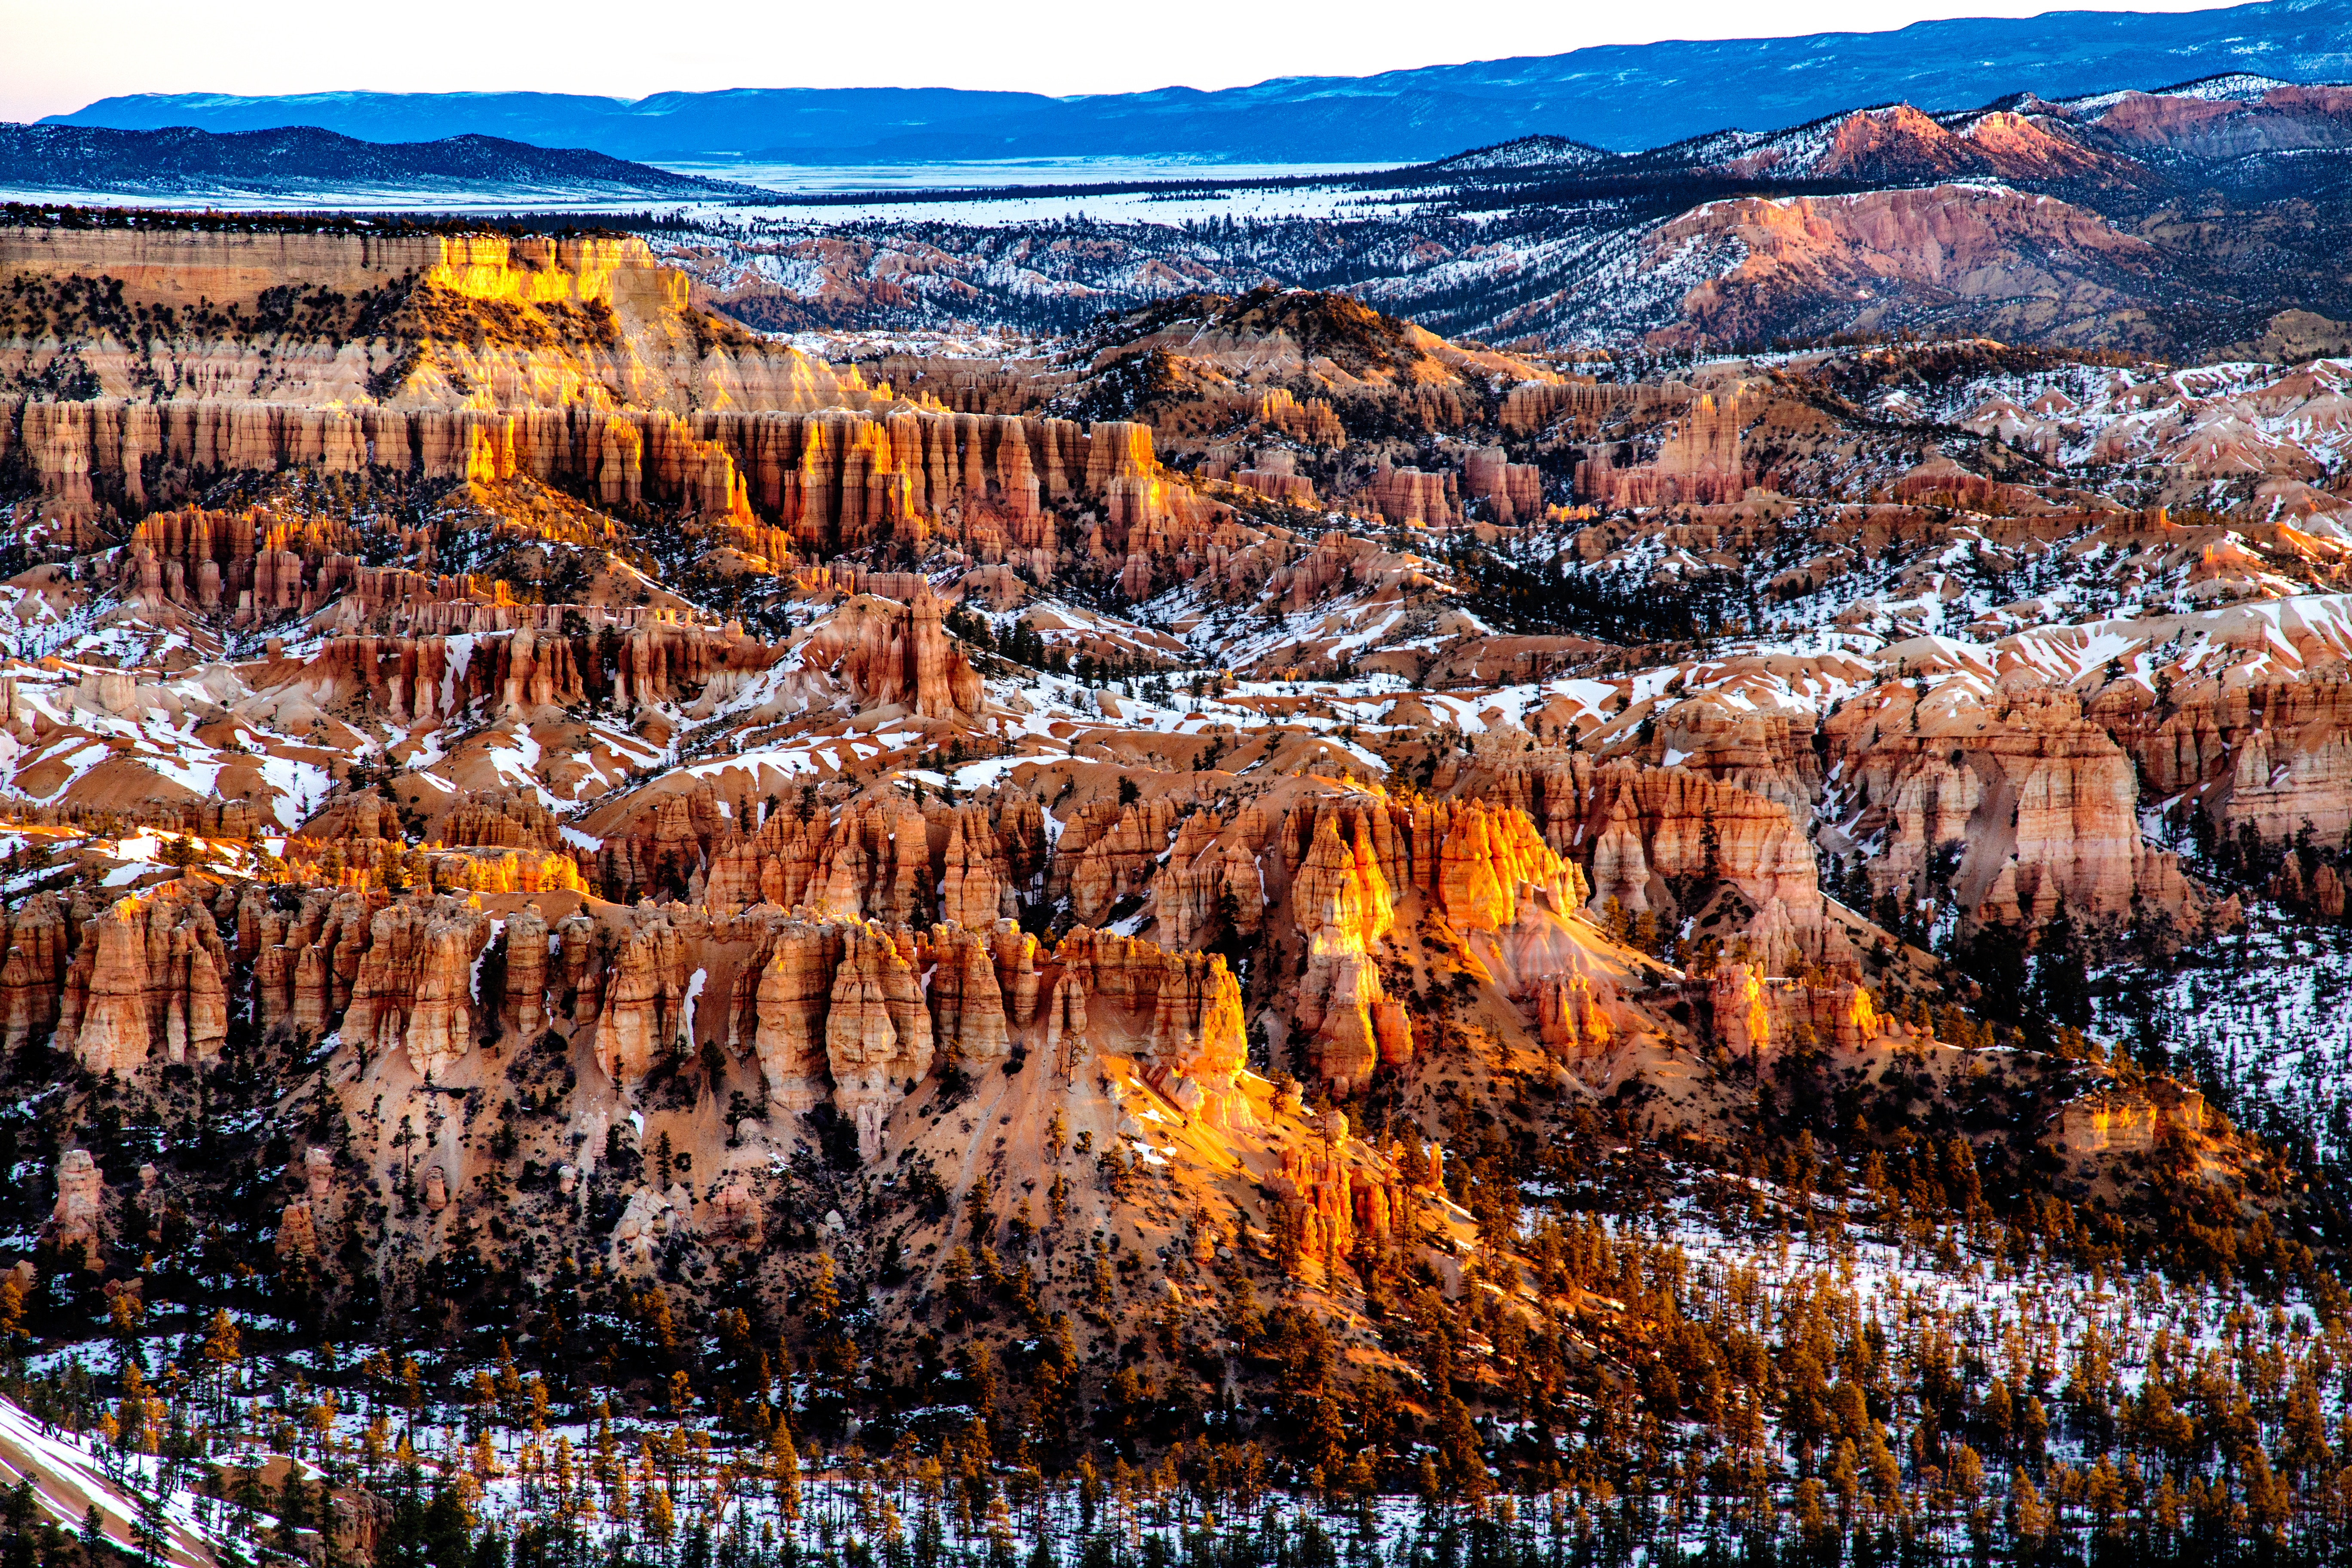 Donald Giannatti Bryce Canyon